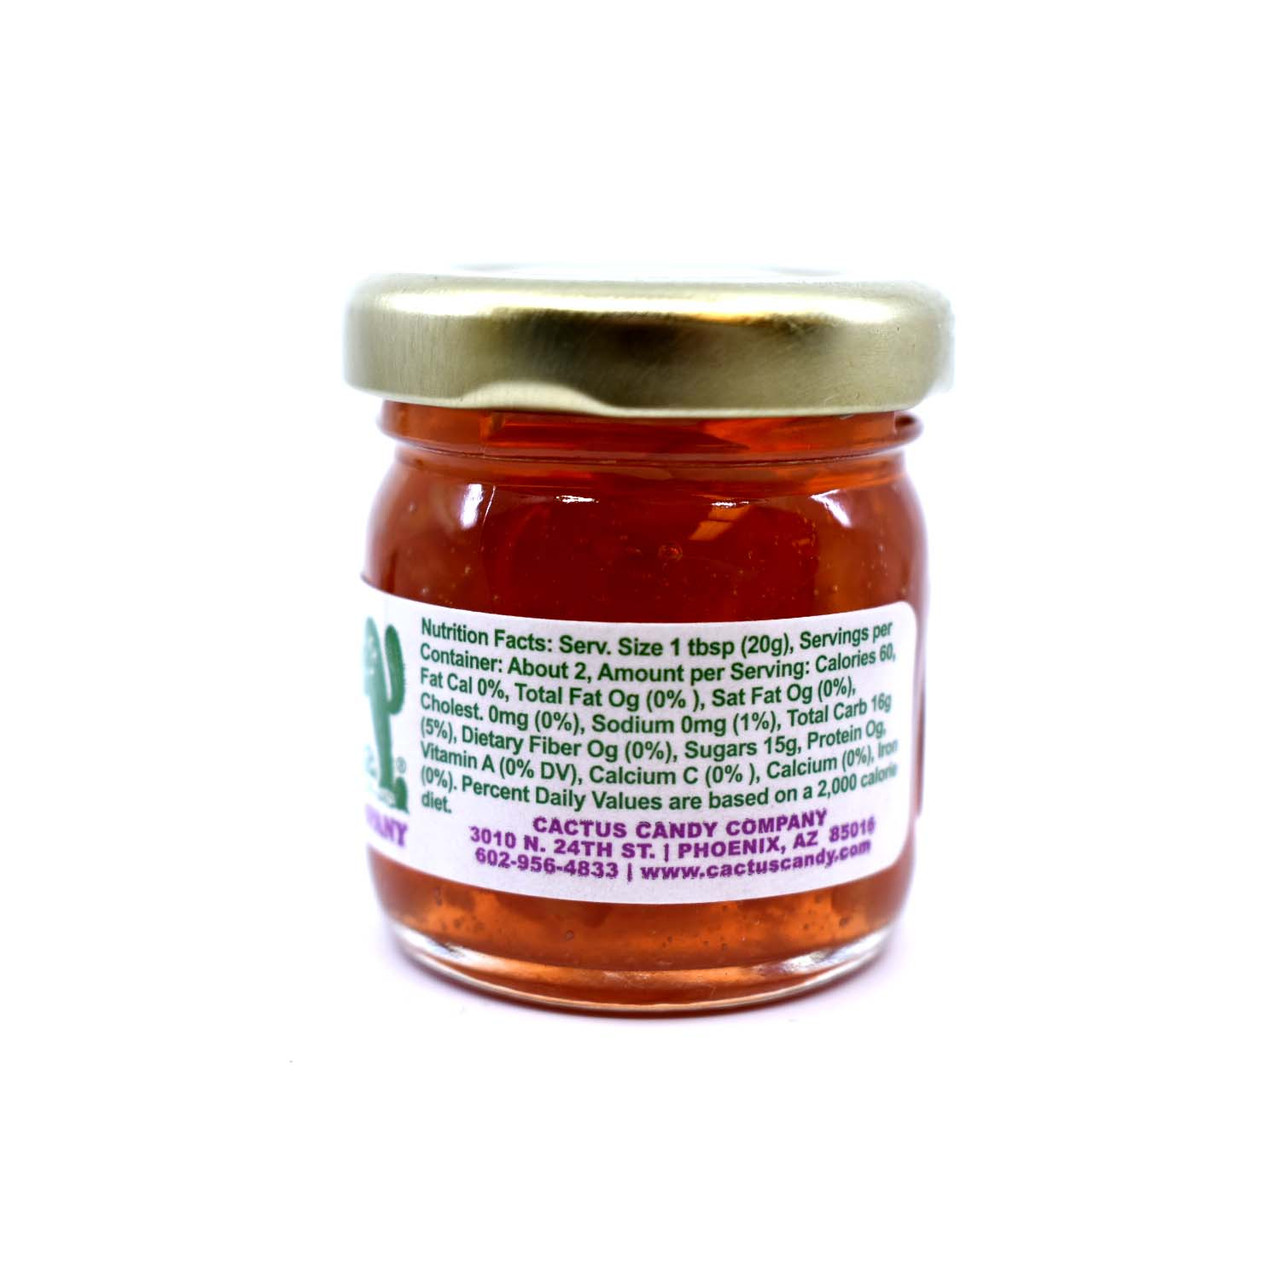 Prickly Pear Maramalade 1.5oz Glass Jar